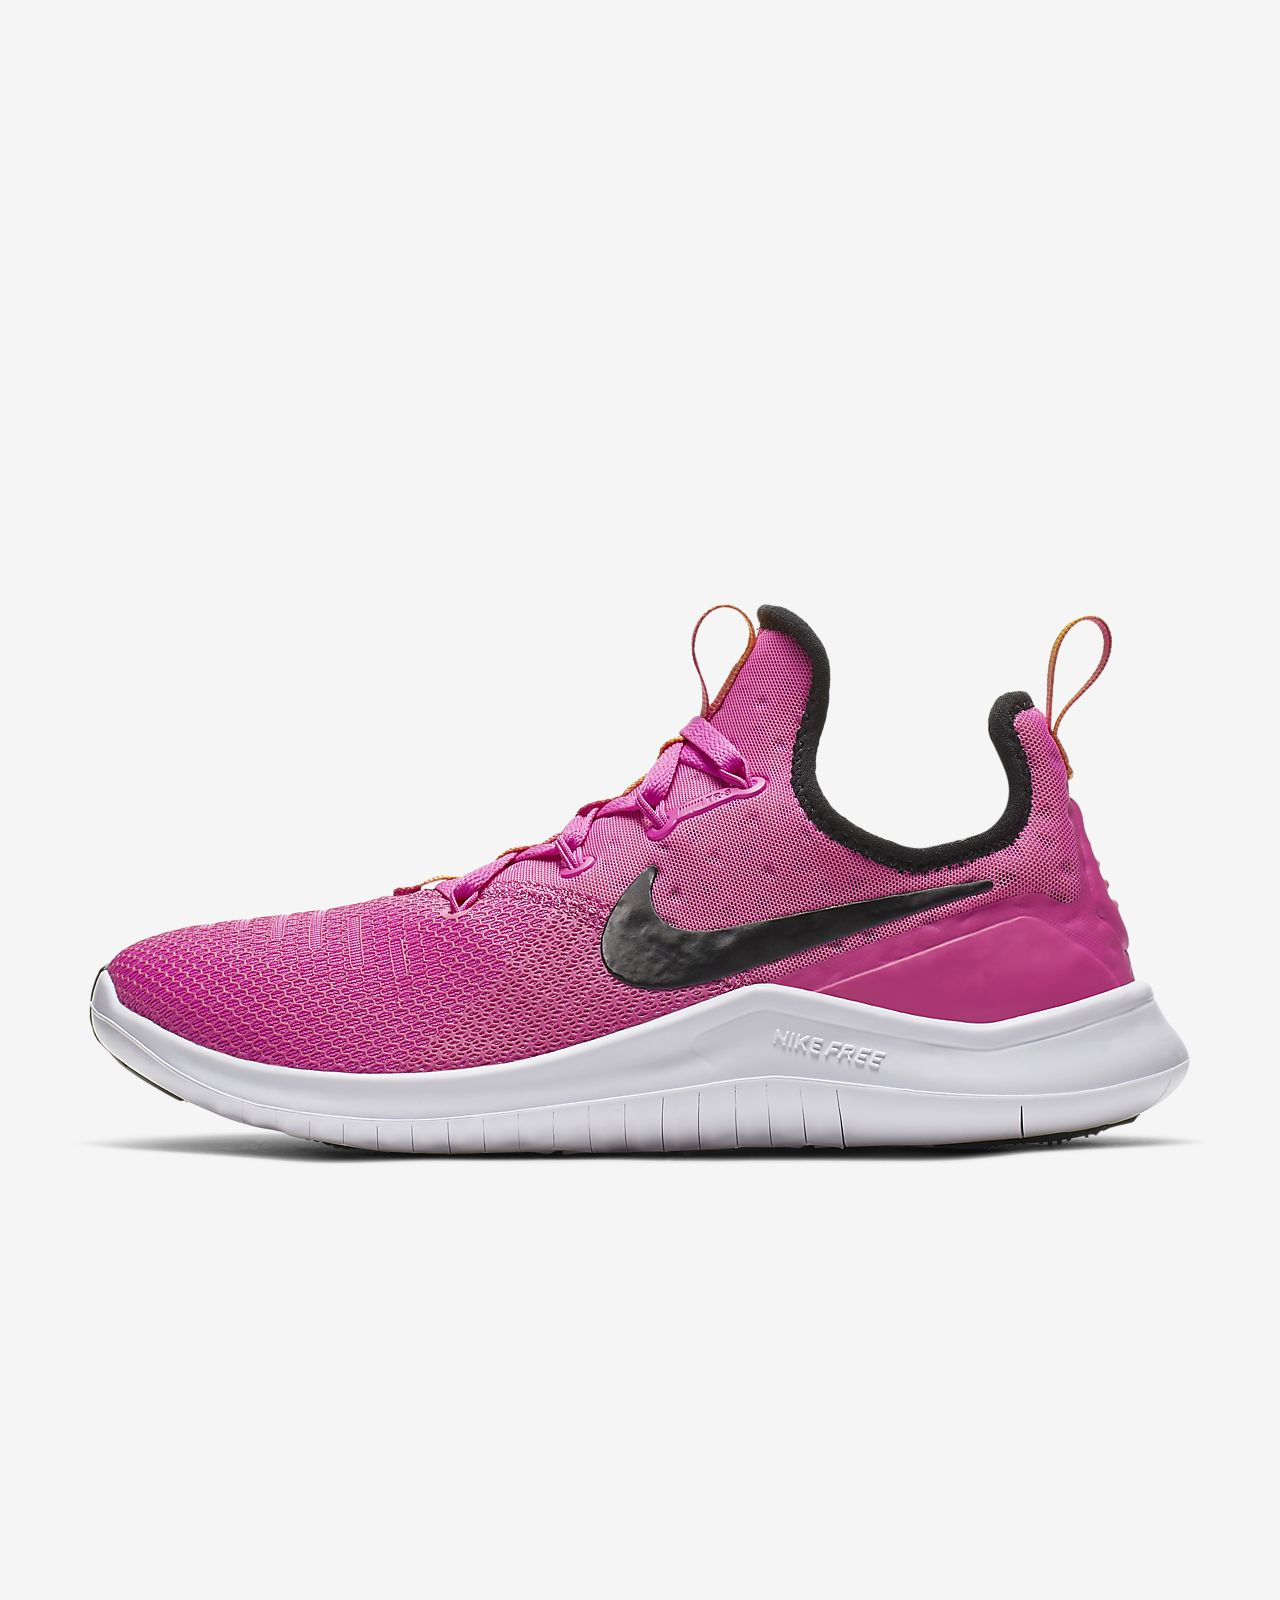 c8a24734a10d2 Nike Free TR8 Women s Gym HIIT Cross Training Shoe. Nike.com